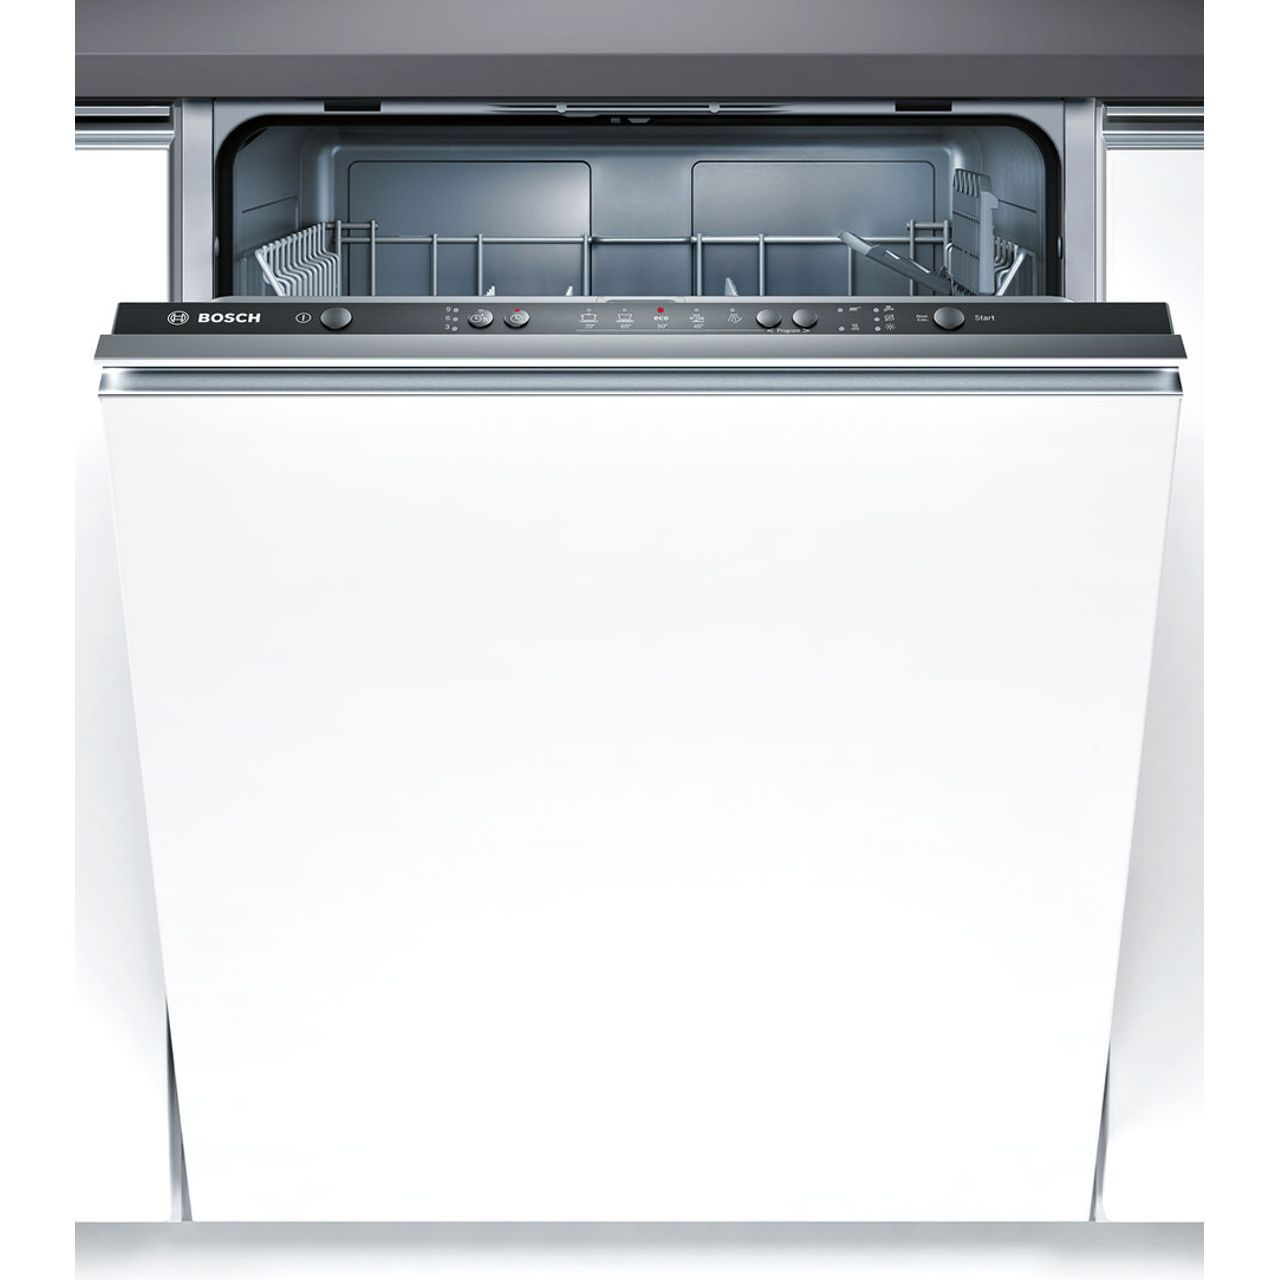 Bosch Serie 4 SMV50C10GB Integrated Dishwasher in Black